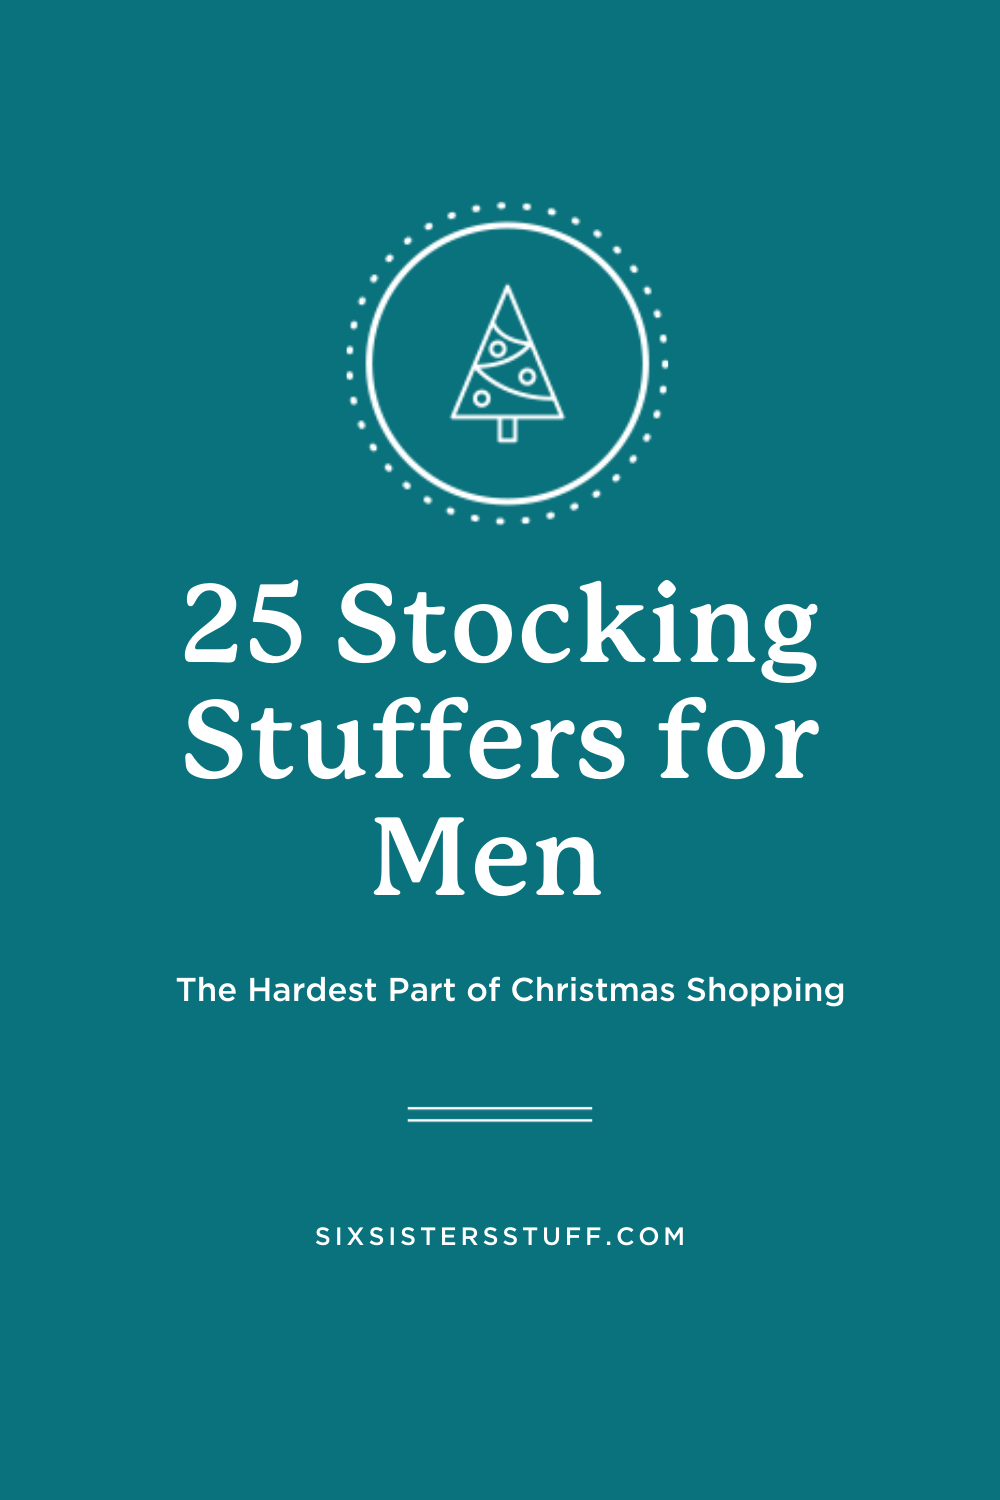 The BEST Stocking Stuffers for Men